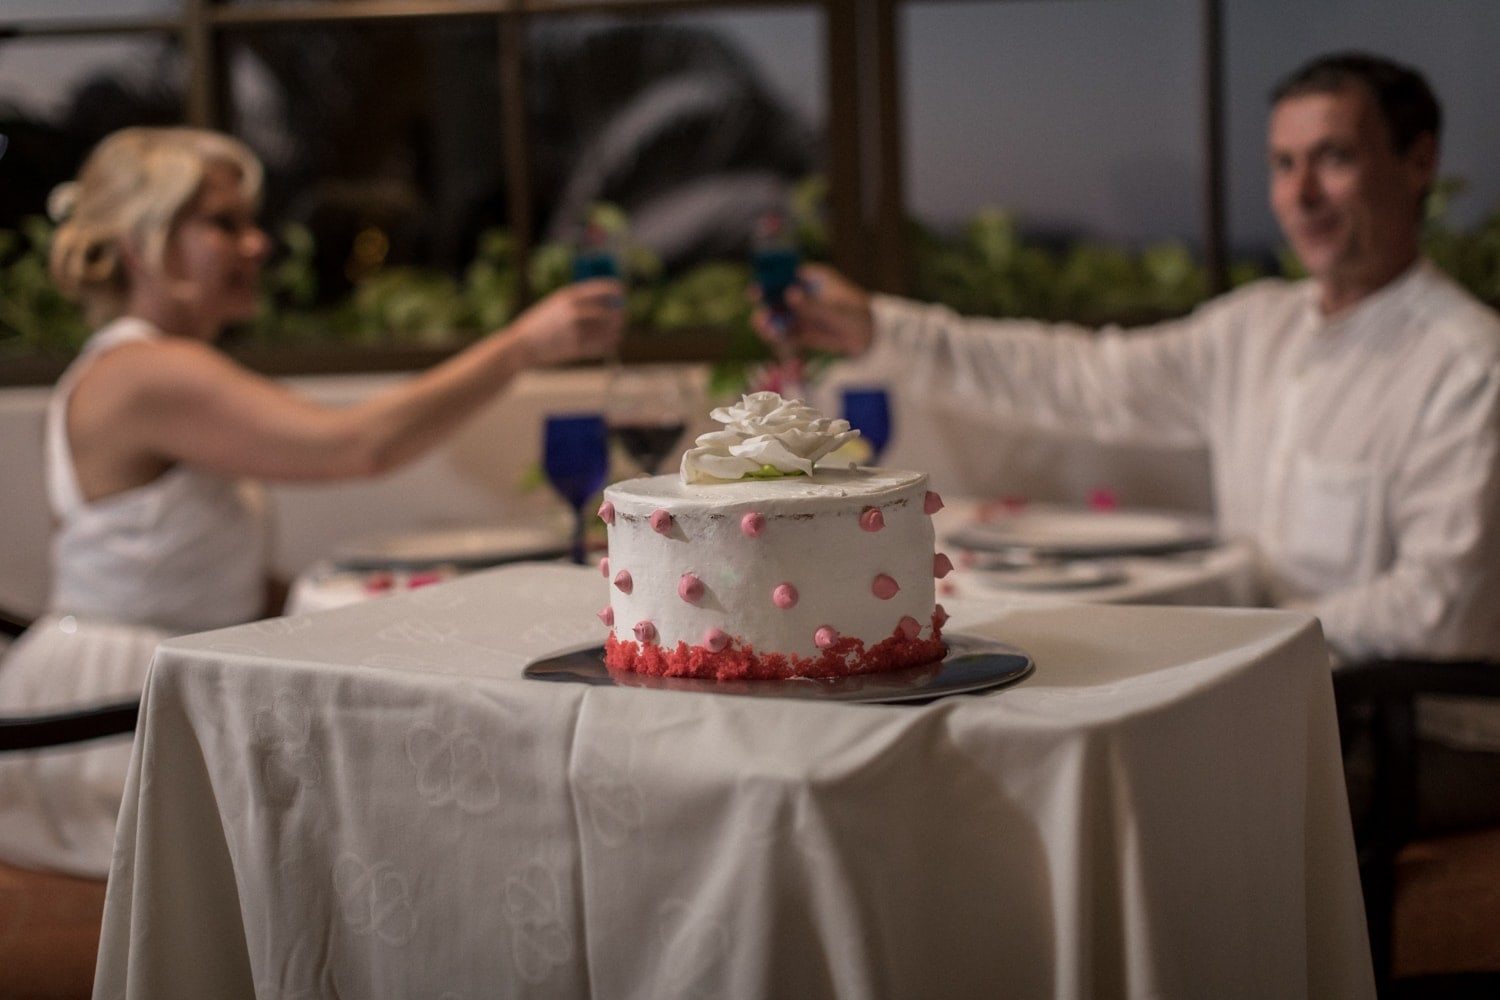 Wedding day cake with bride and groom in background at table toasting.